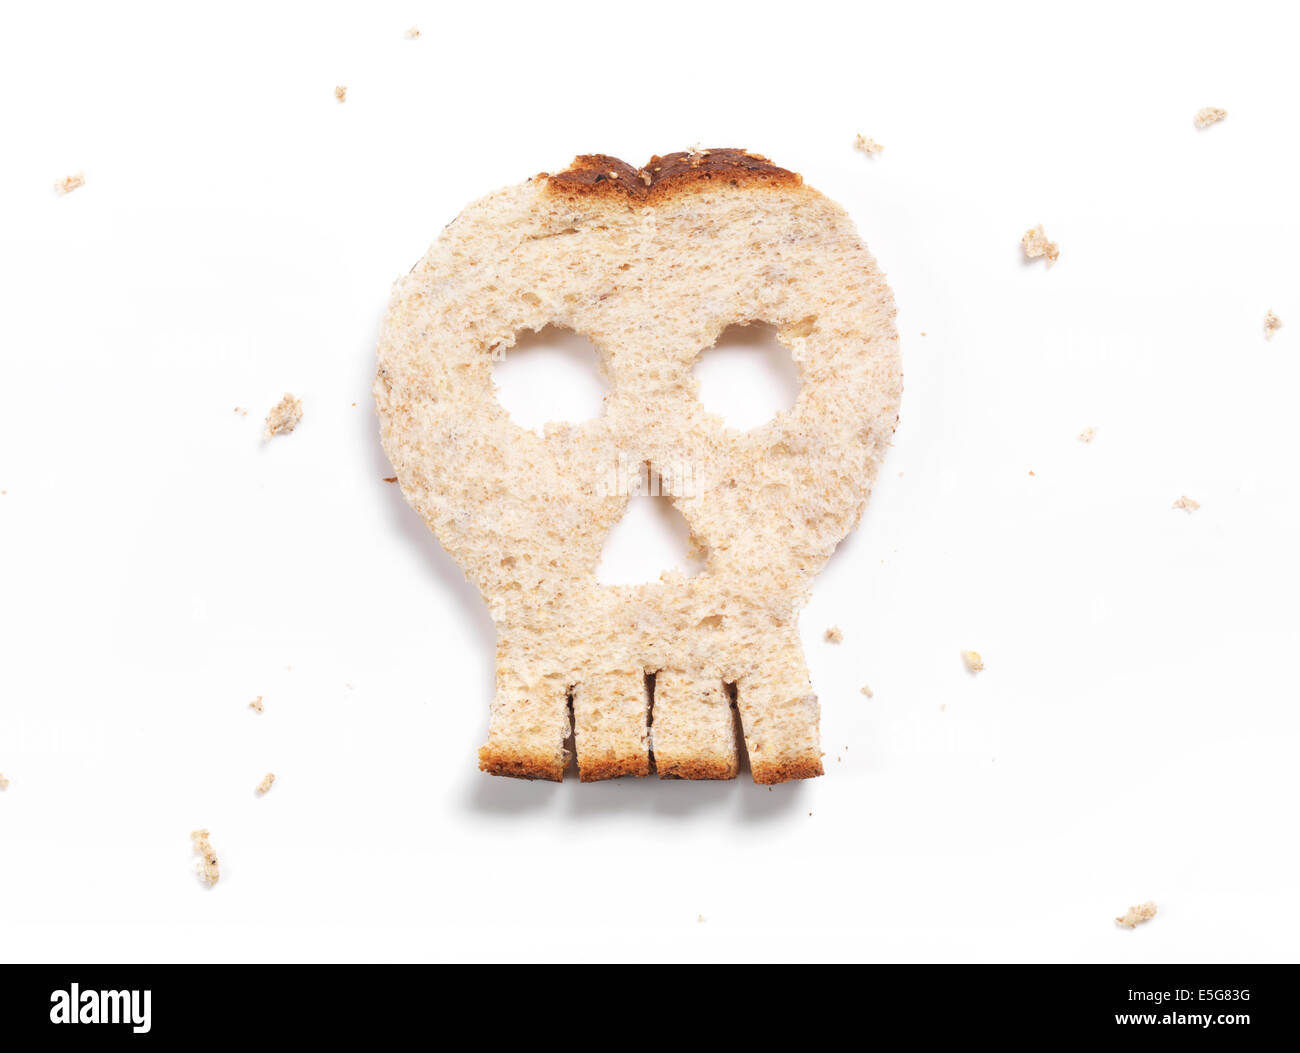 Skull made of bread isolated on white background - Stock Image